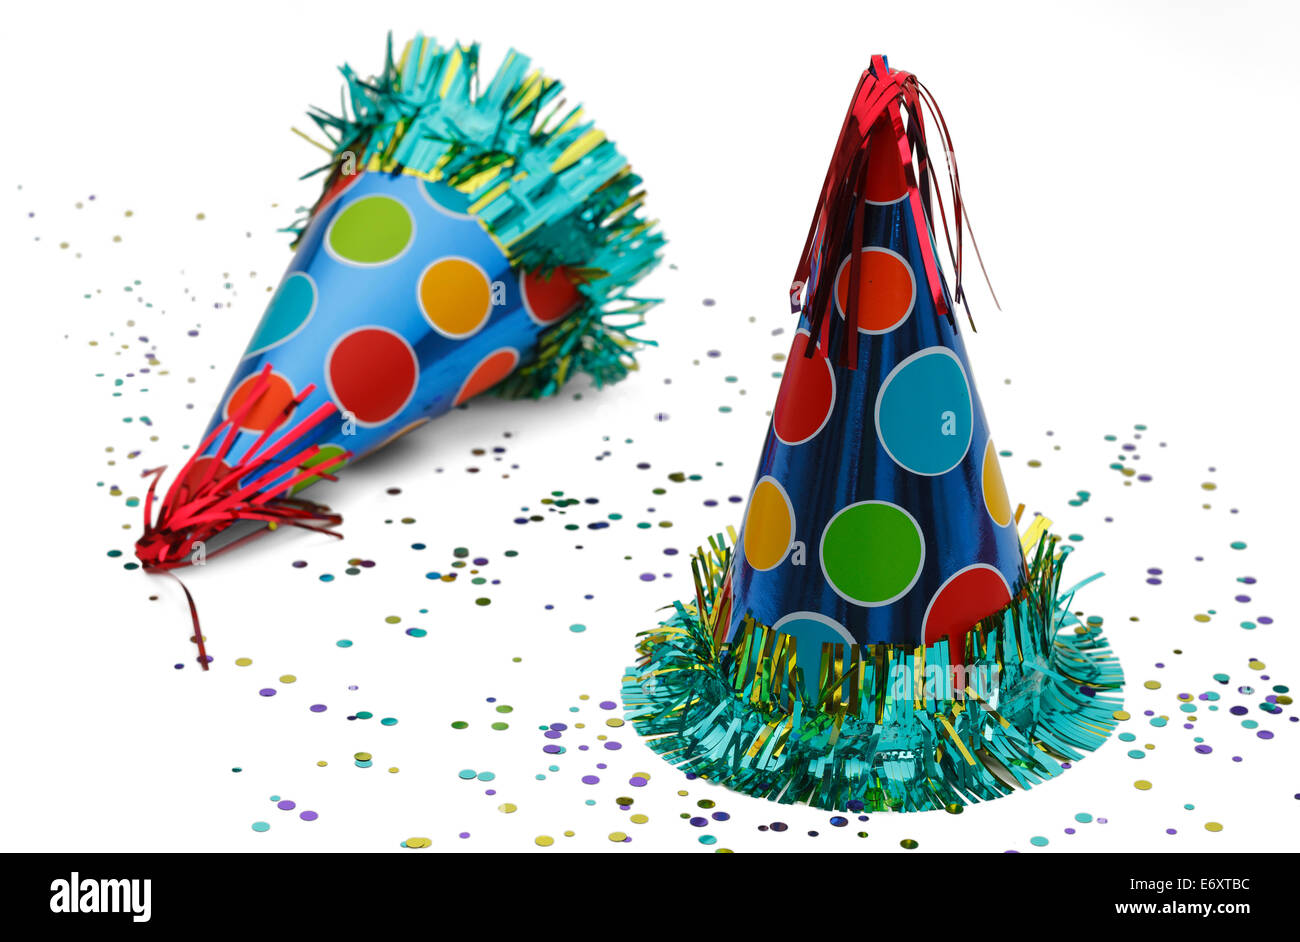 Two Celebration Hats with Confetti Isolated on White Background. - Stock Image